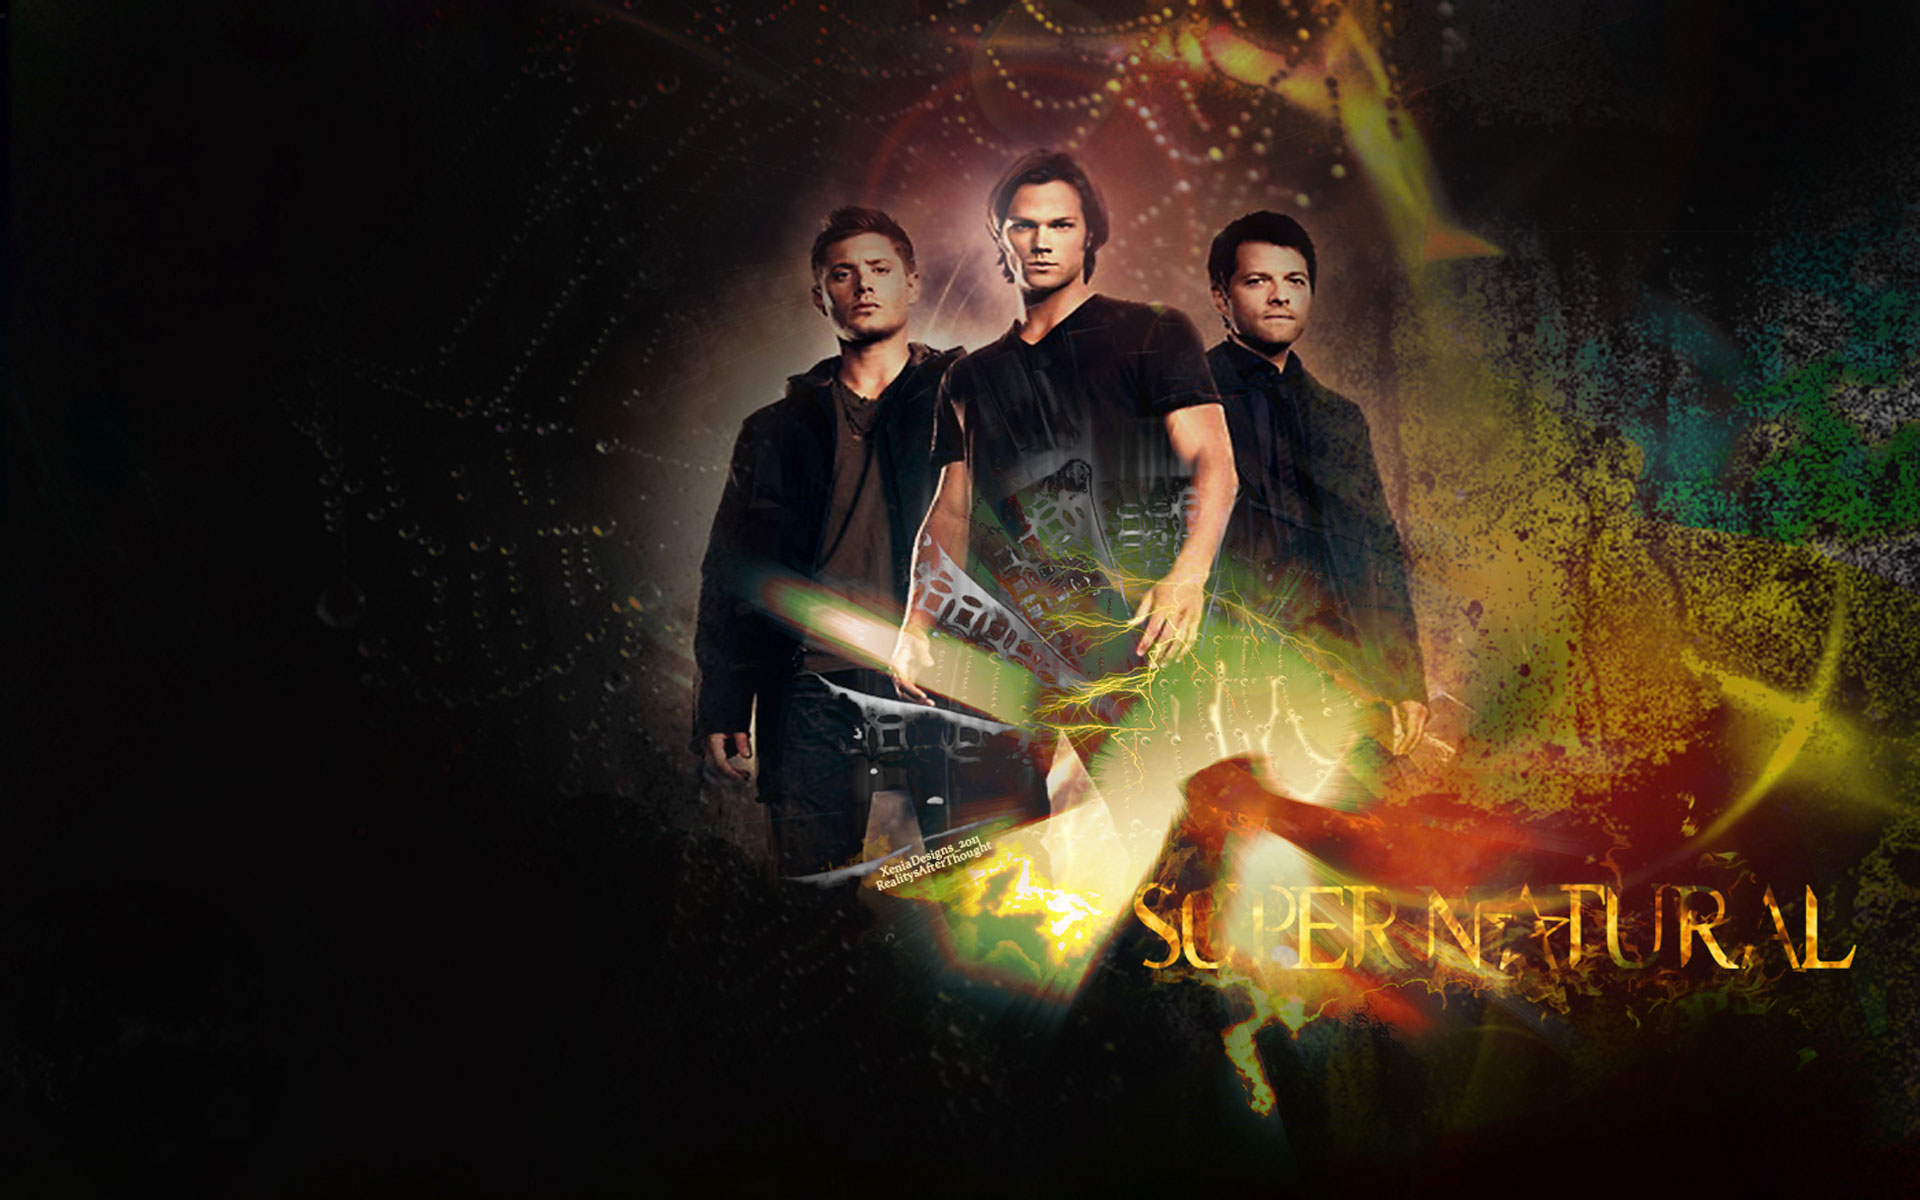 supernatural wallpapers yellow HD Desktop Wallpapers 4k HD